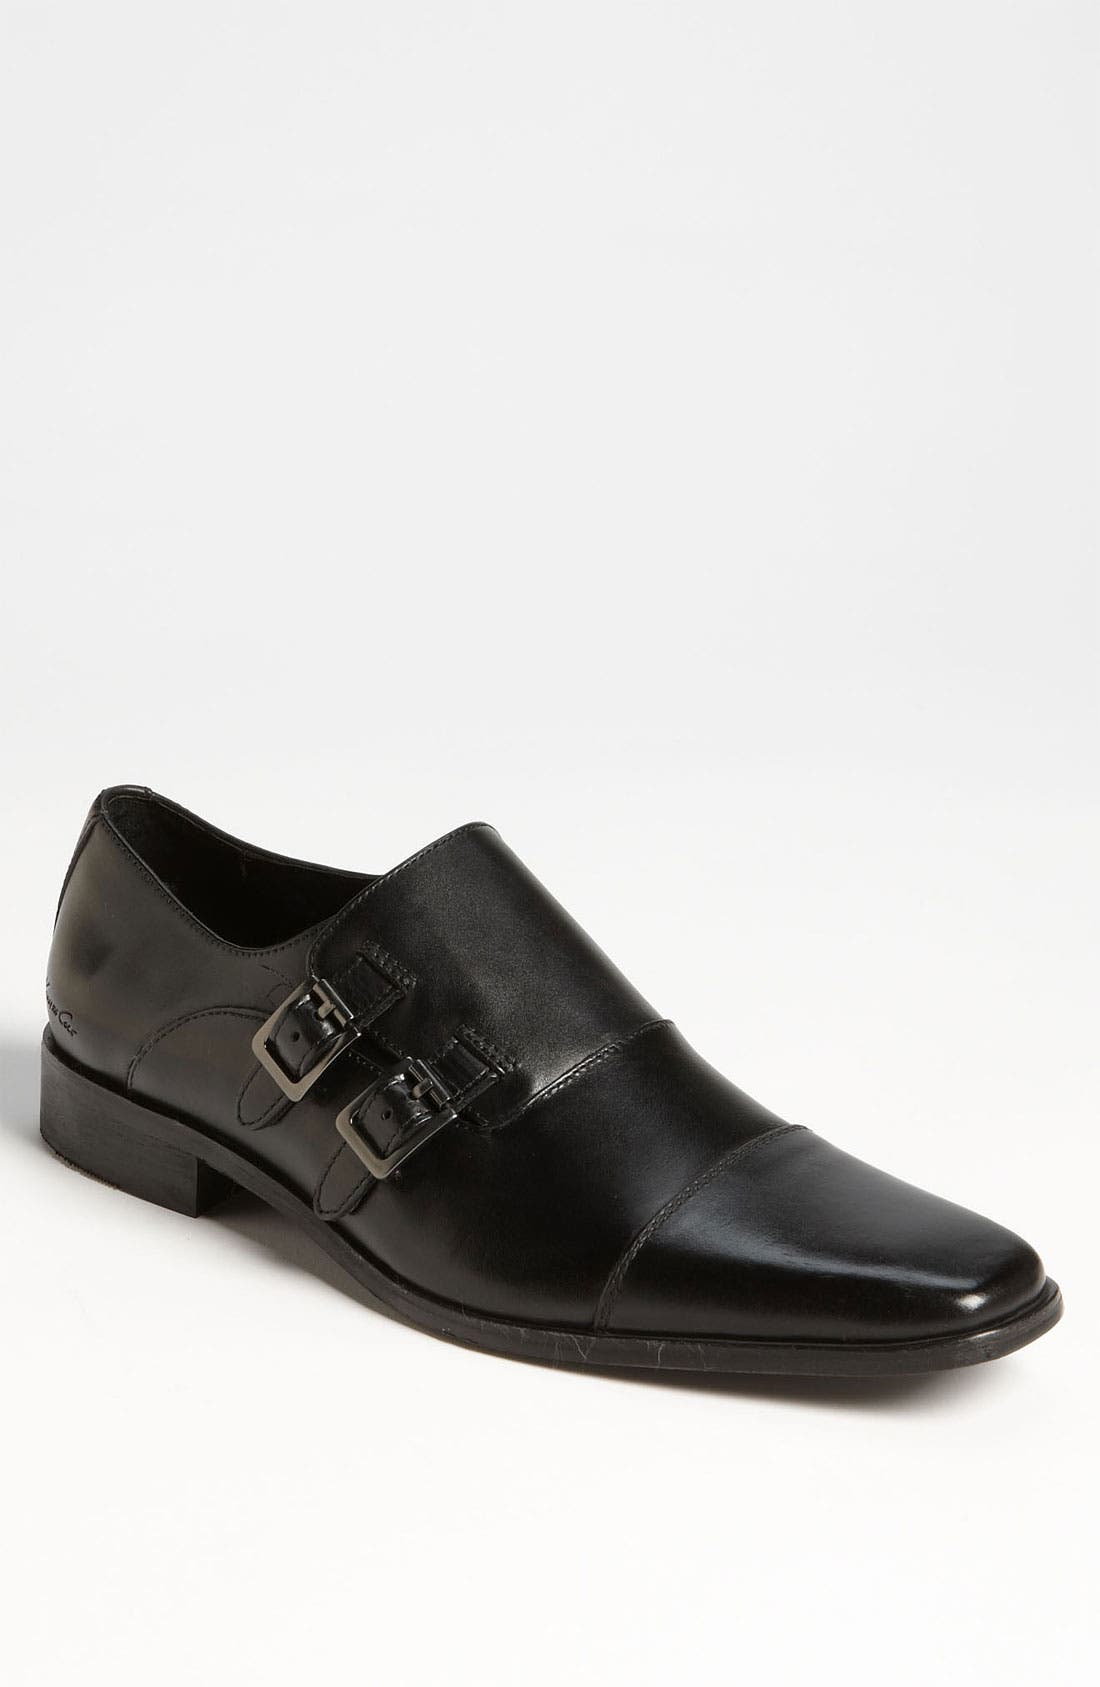 Main Image - Kenneth Cole New York 'Fancy First' Double Monk Strap Slip-On